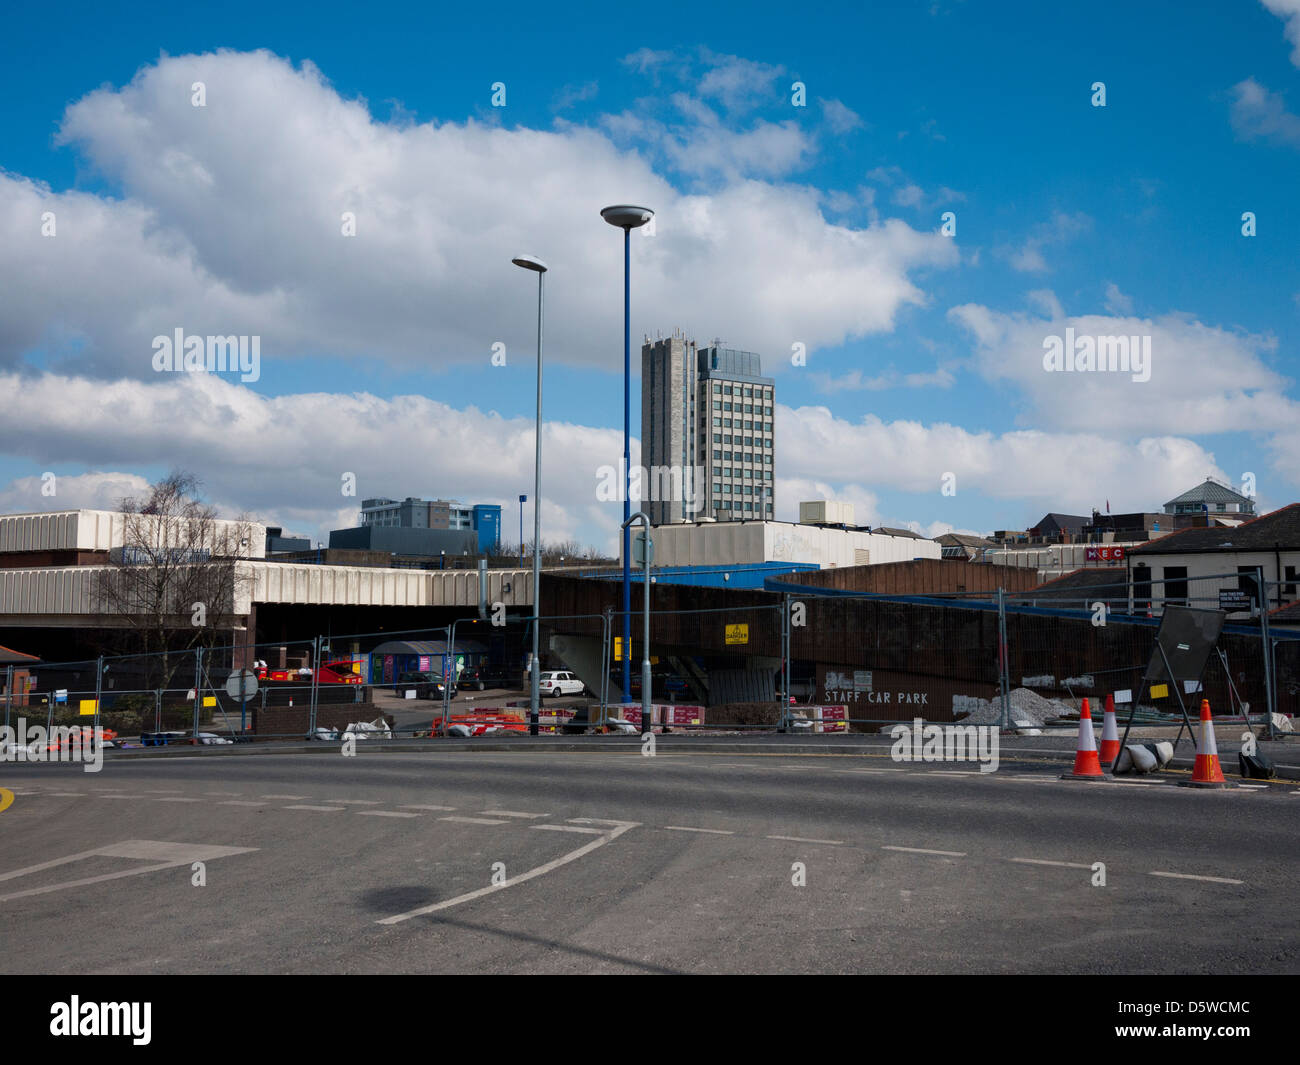 Distant view of Oldham Civic Centre Local Government Offices, Oldham, Greater Manchester, UK. - Stock Image